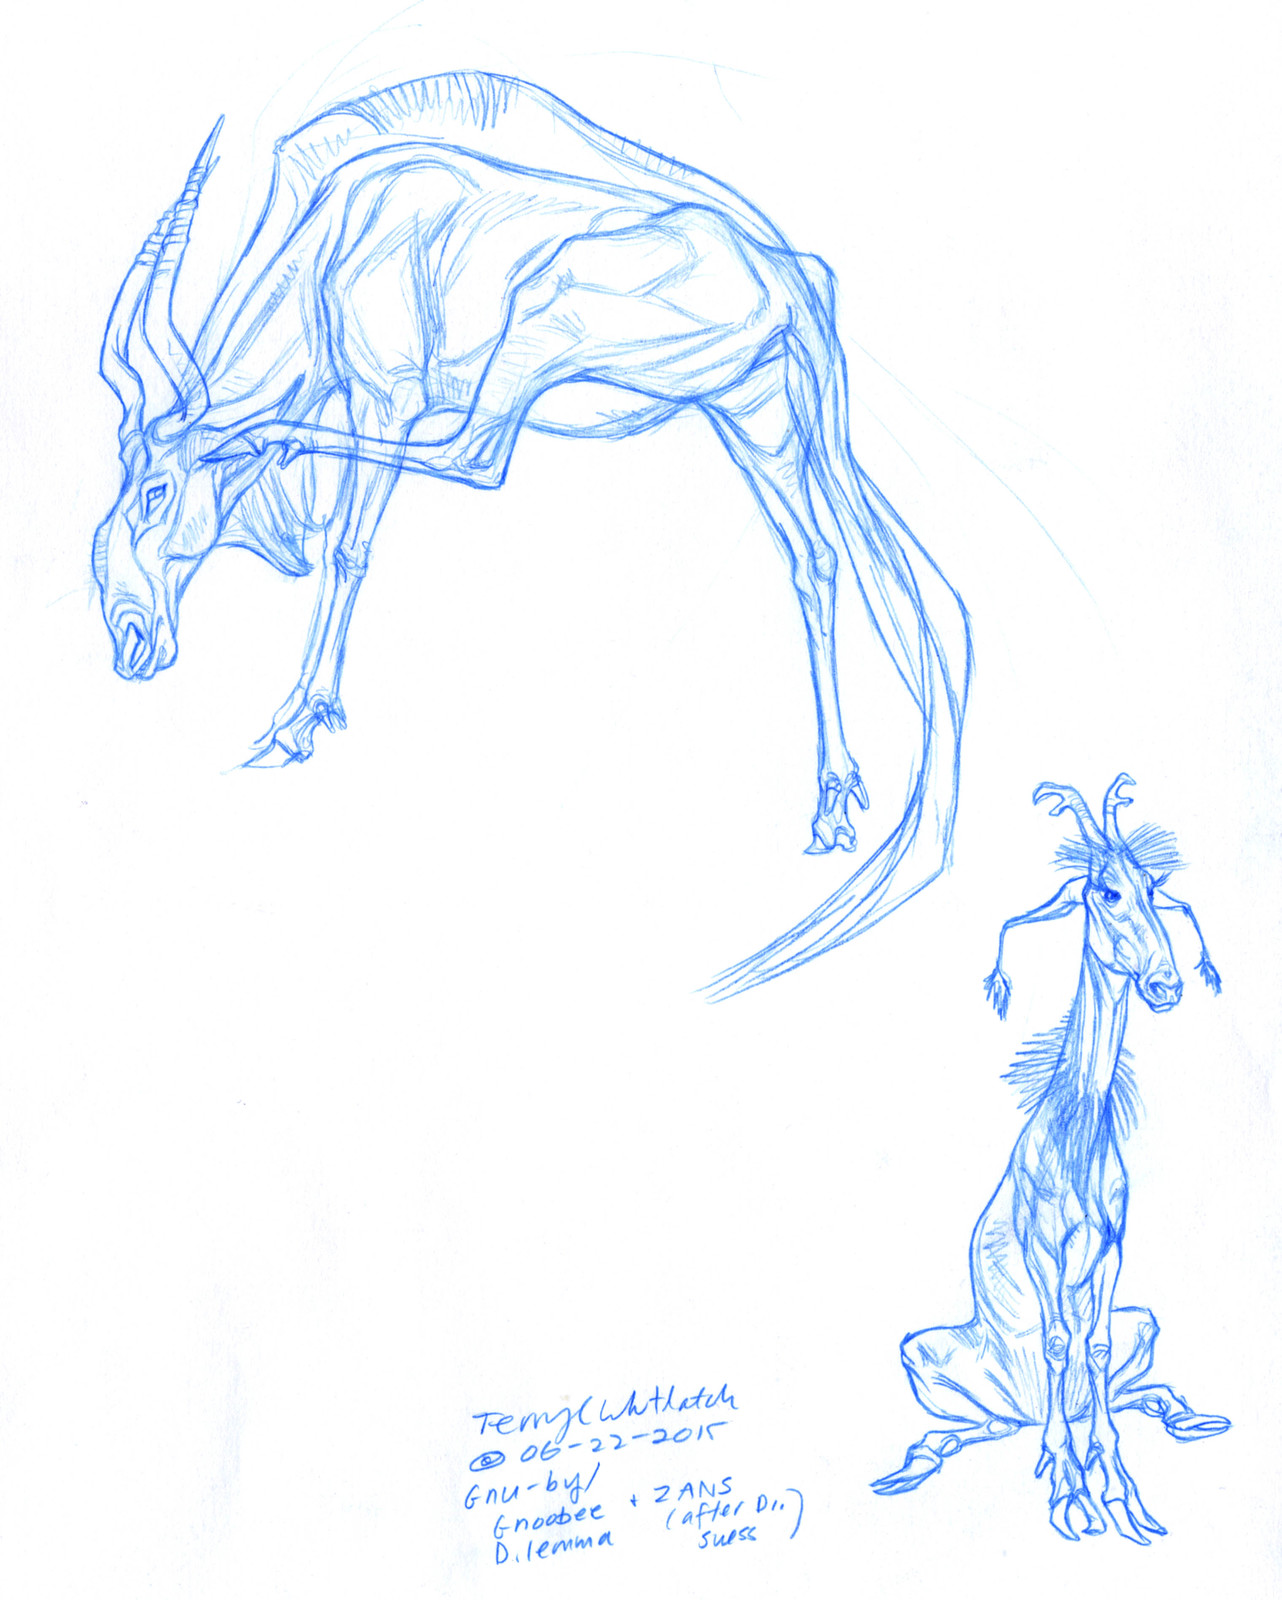 Creature Design step 1--the Gack, after Dr. Suess